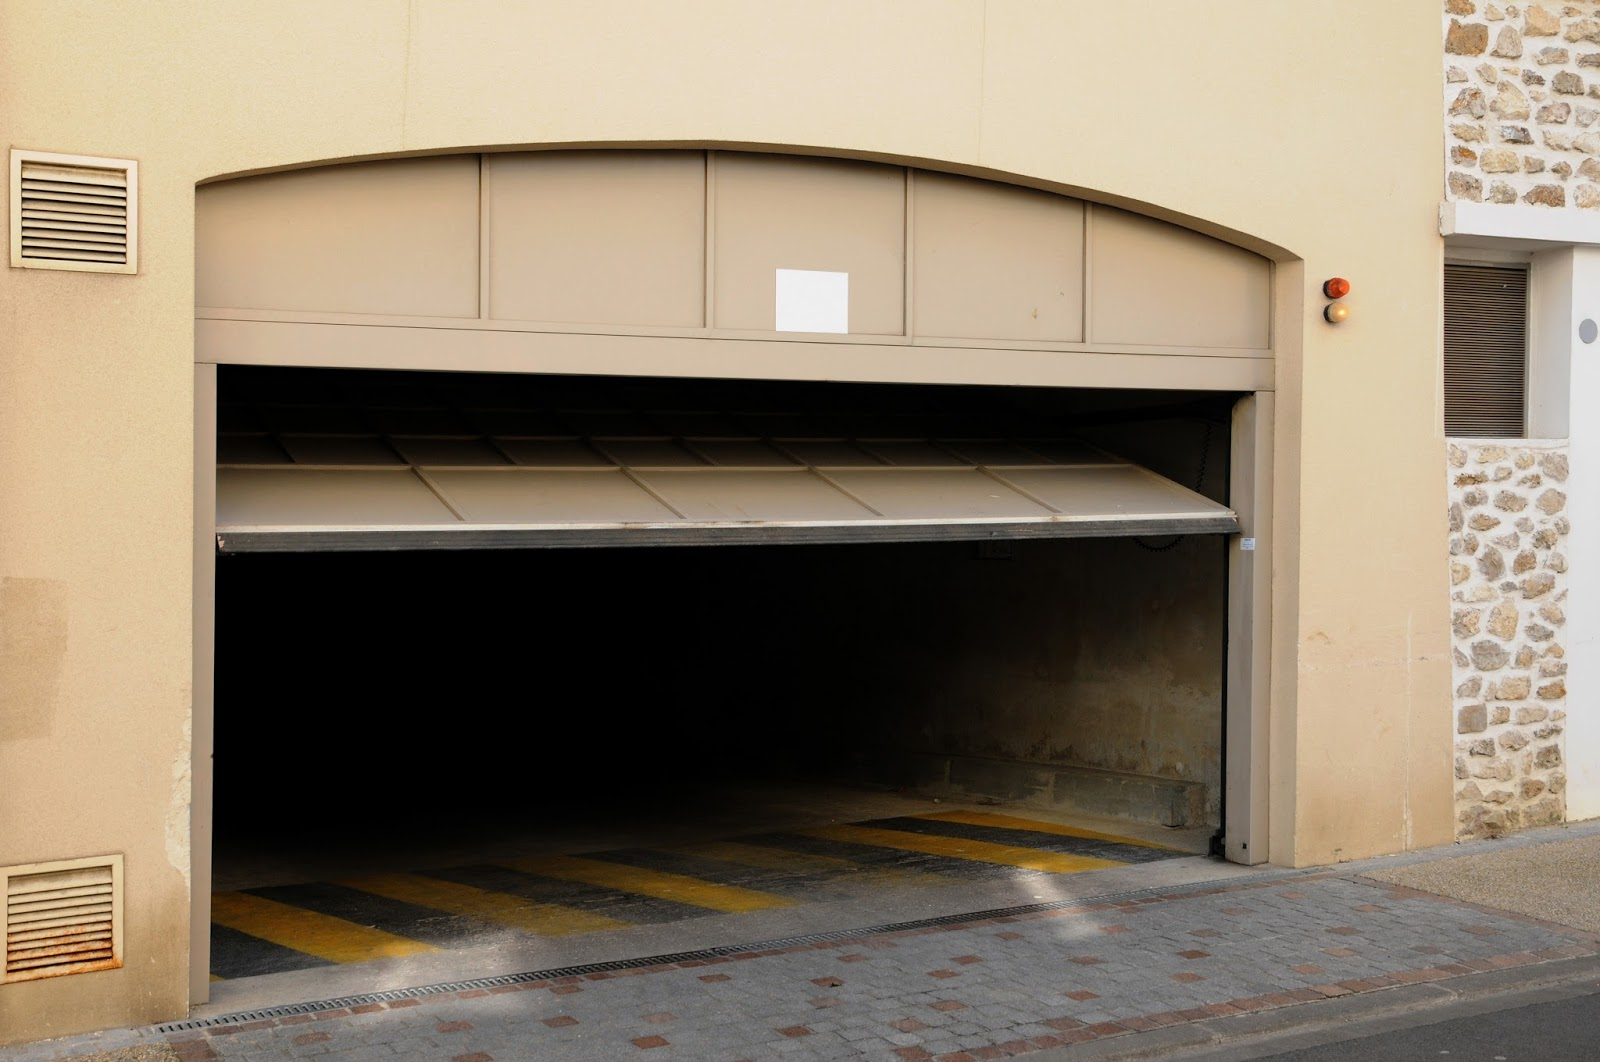 5 Things You Should Know About Your Garage Door Before You Automate